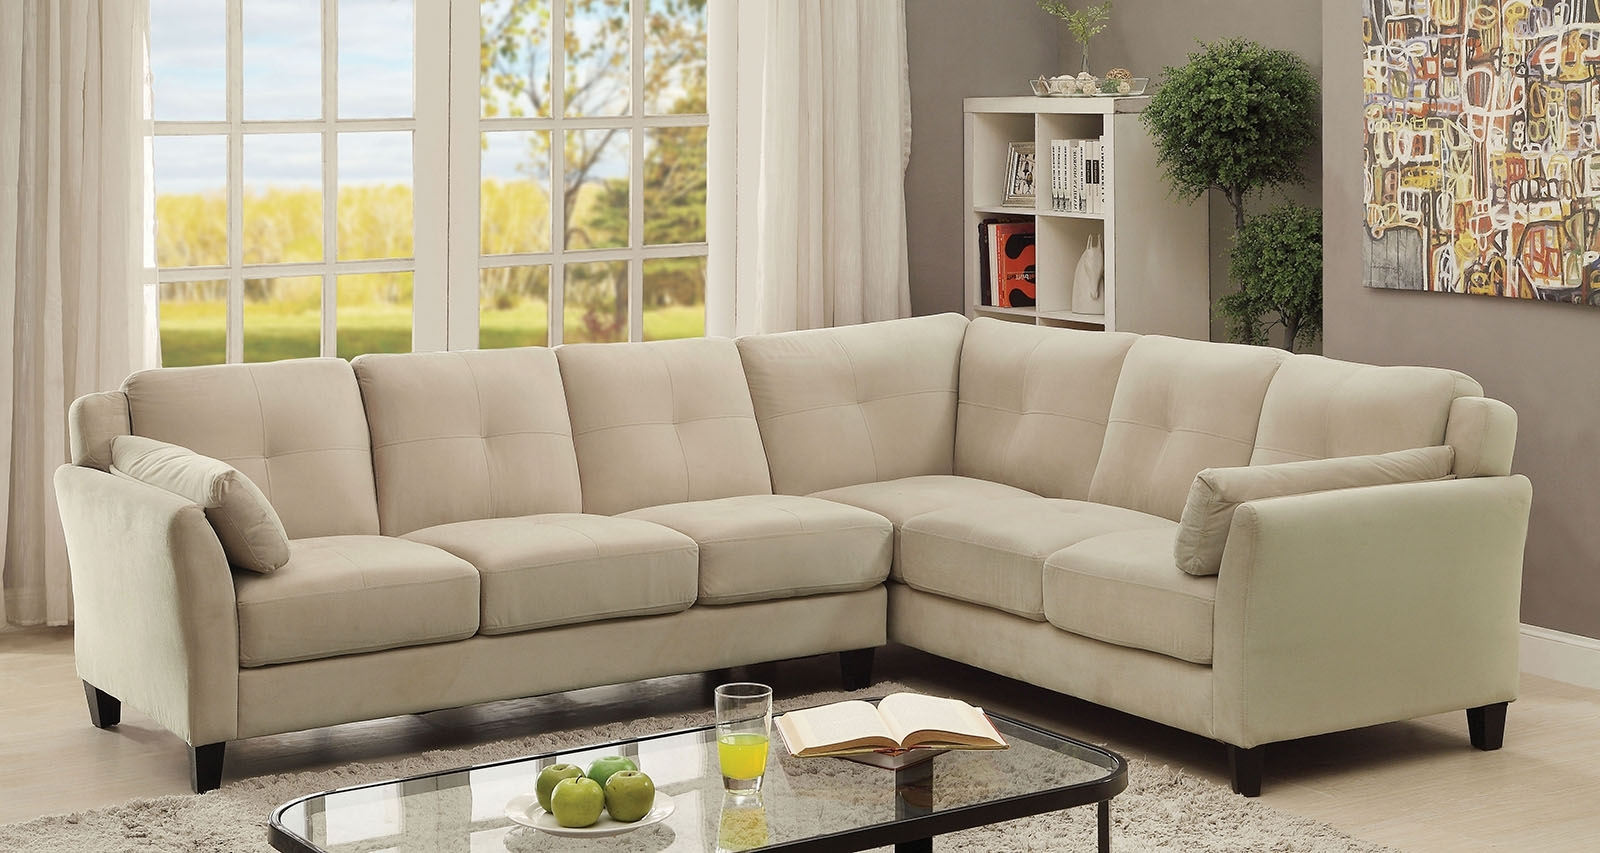 Andrew's Furniture And Mattress Throughout Fashionable Nh Sectional Sofas (View 3 of 15)